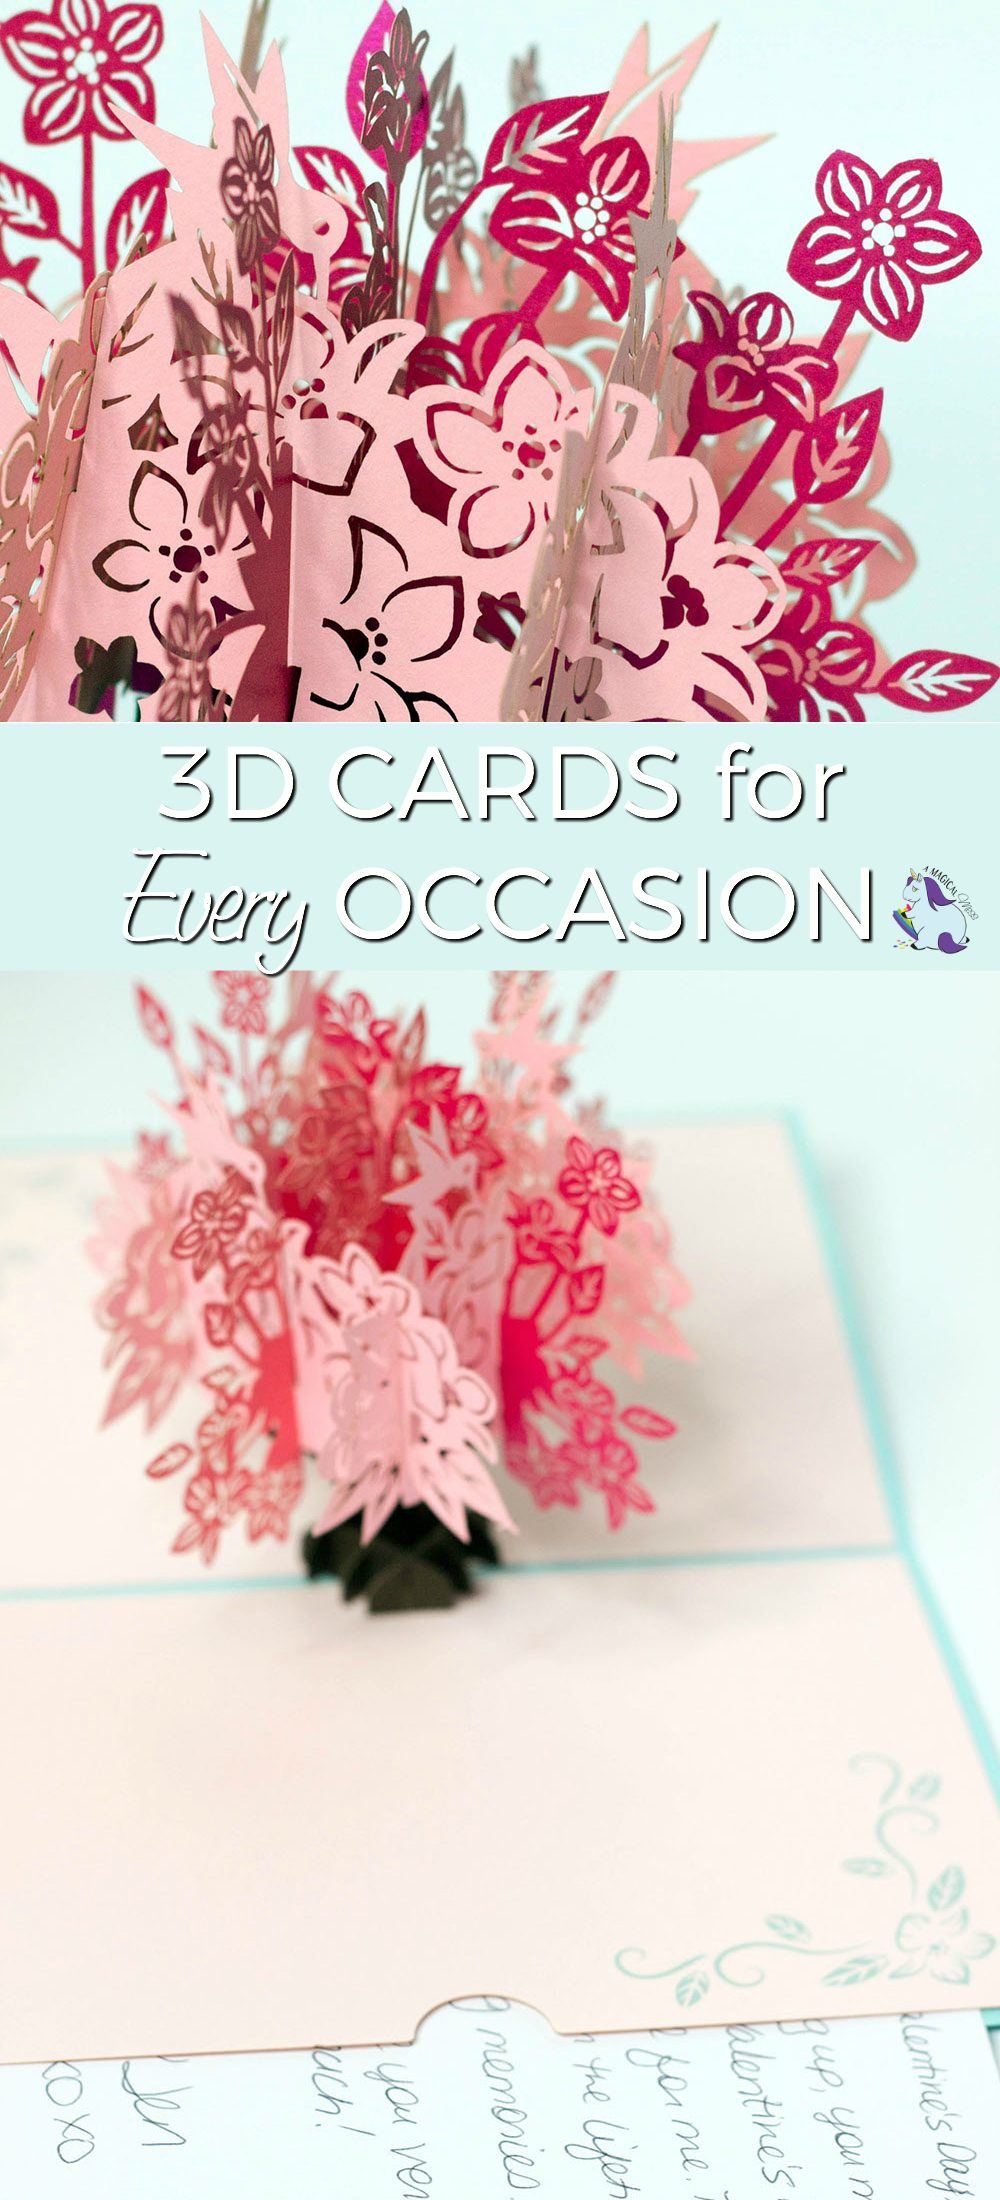 Smile-Inducing 3D Cards for Every Occasion